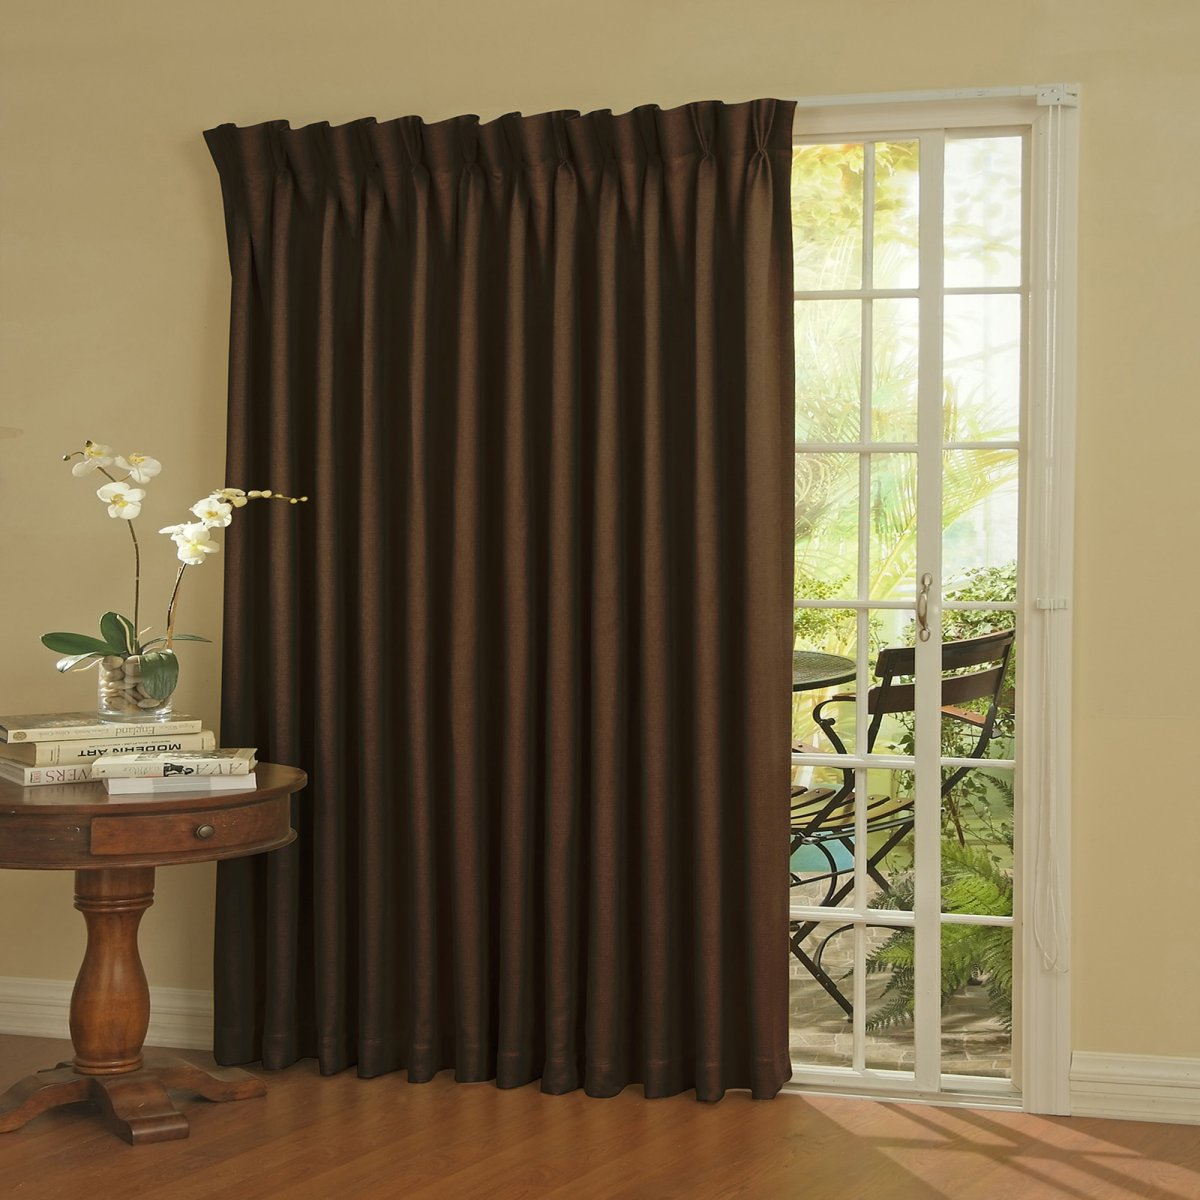 Curtains for sliding glass doors for Sliding glass doors curtains